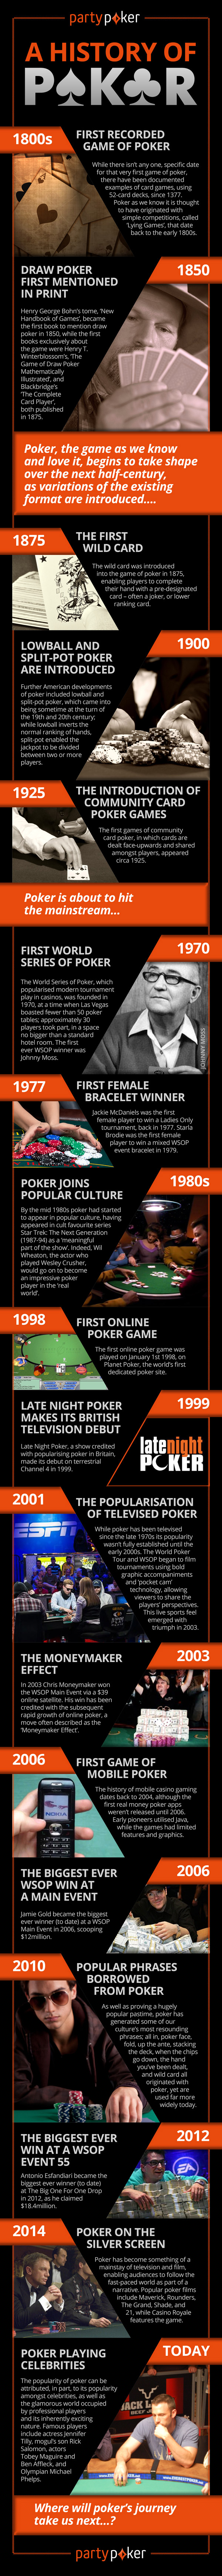 How Much Do You Know About the History of Poker?